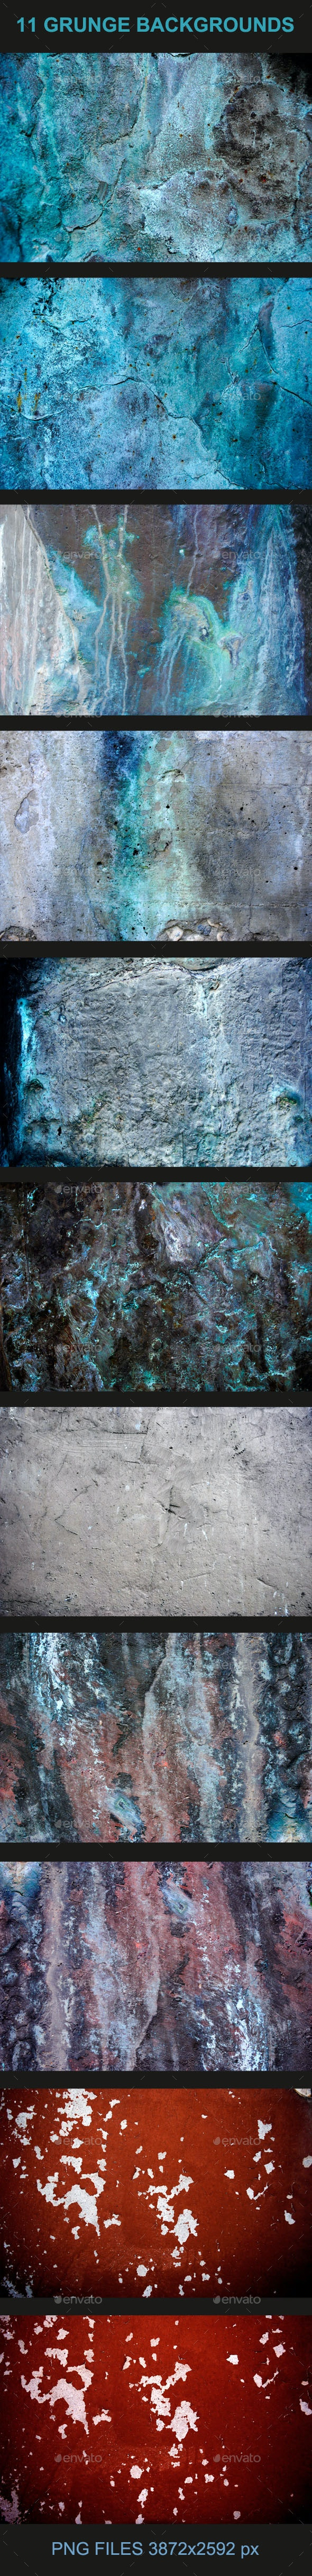 11 Grunge Backgrounds - Backgrounds Graphics